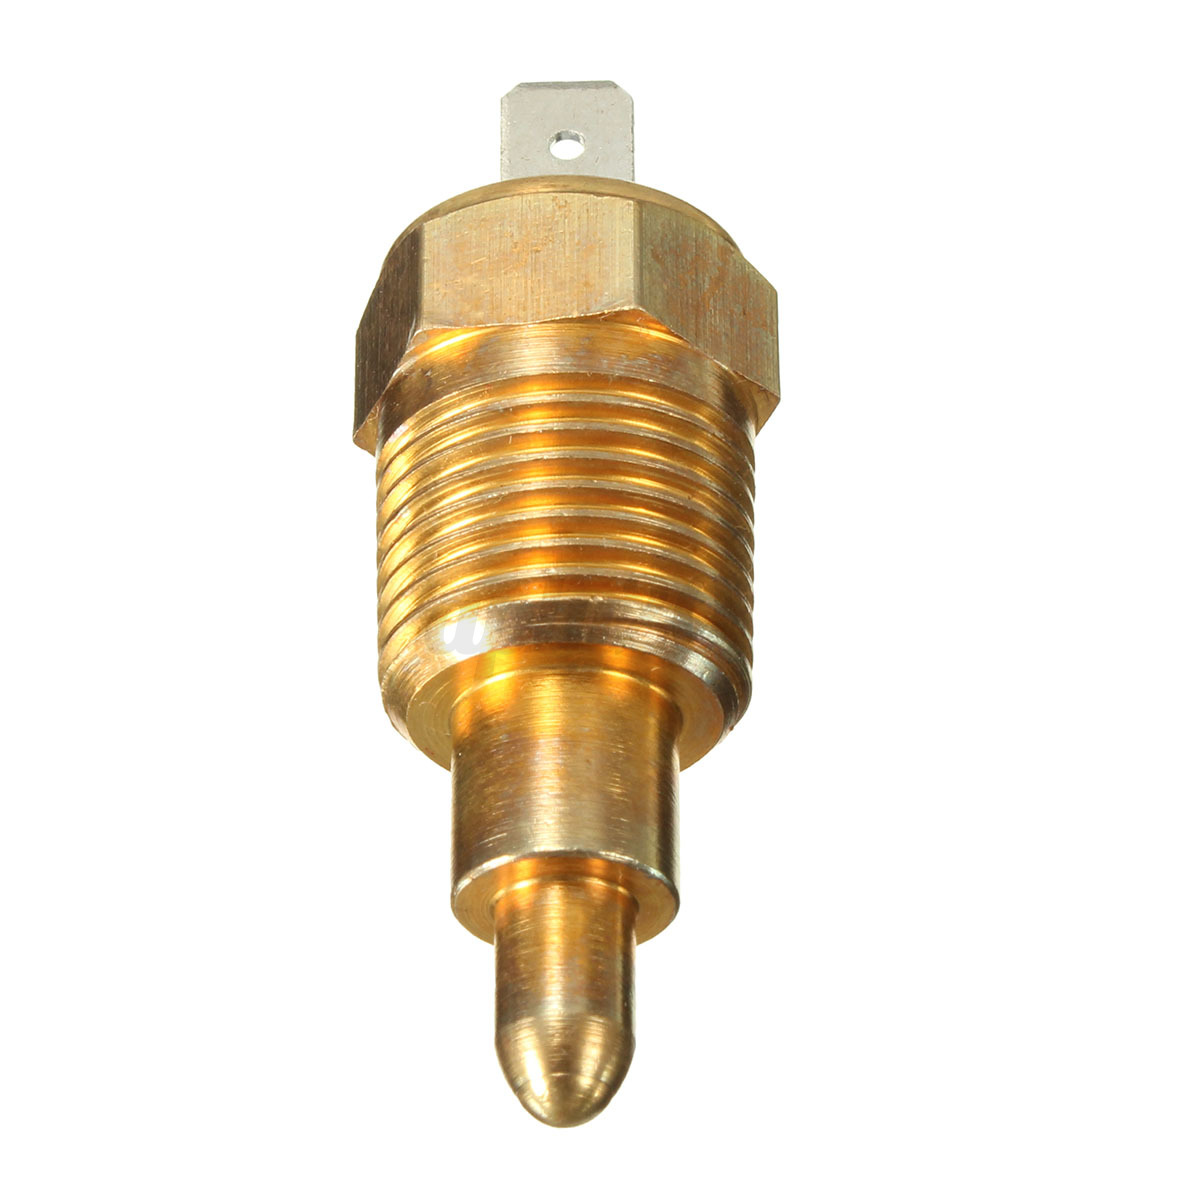 Engine Fan Switch : Degree electric engine cooling fan thermostat